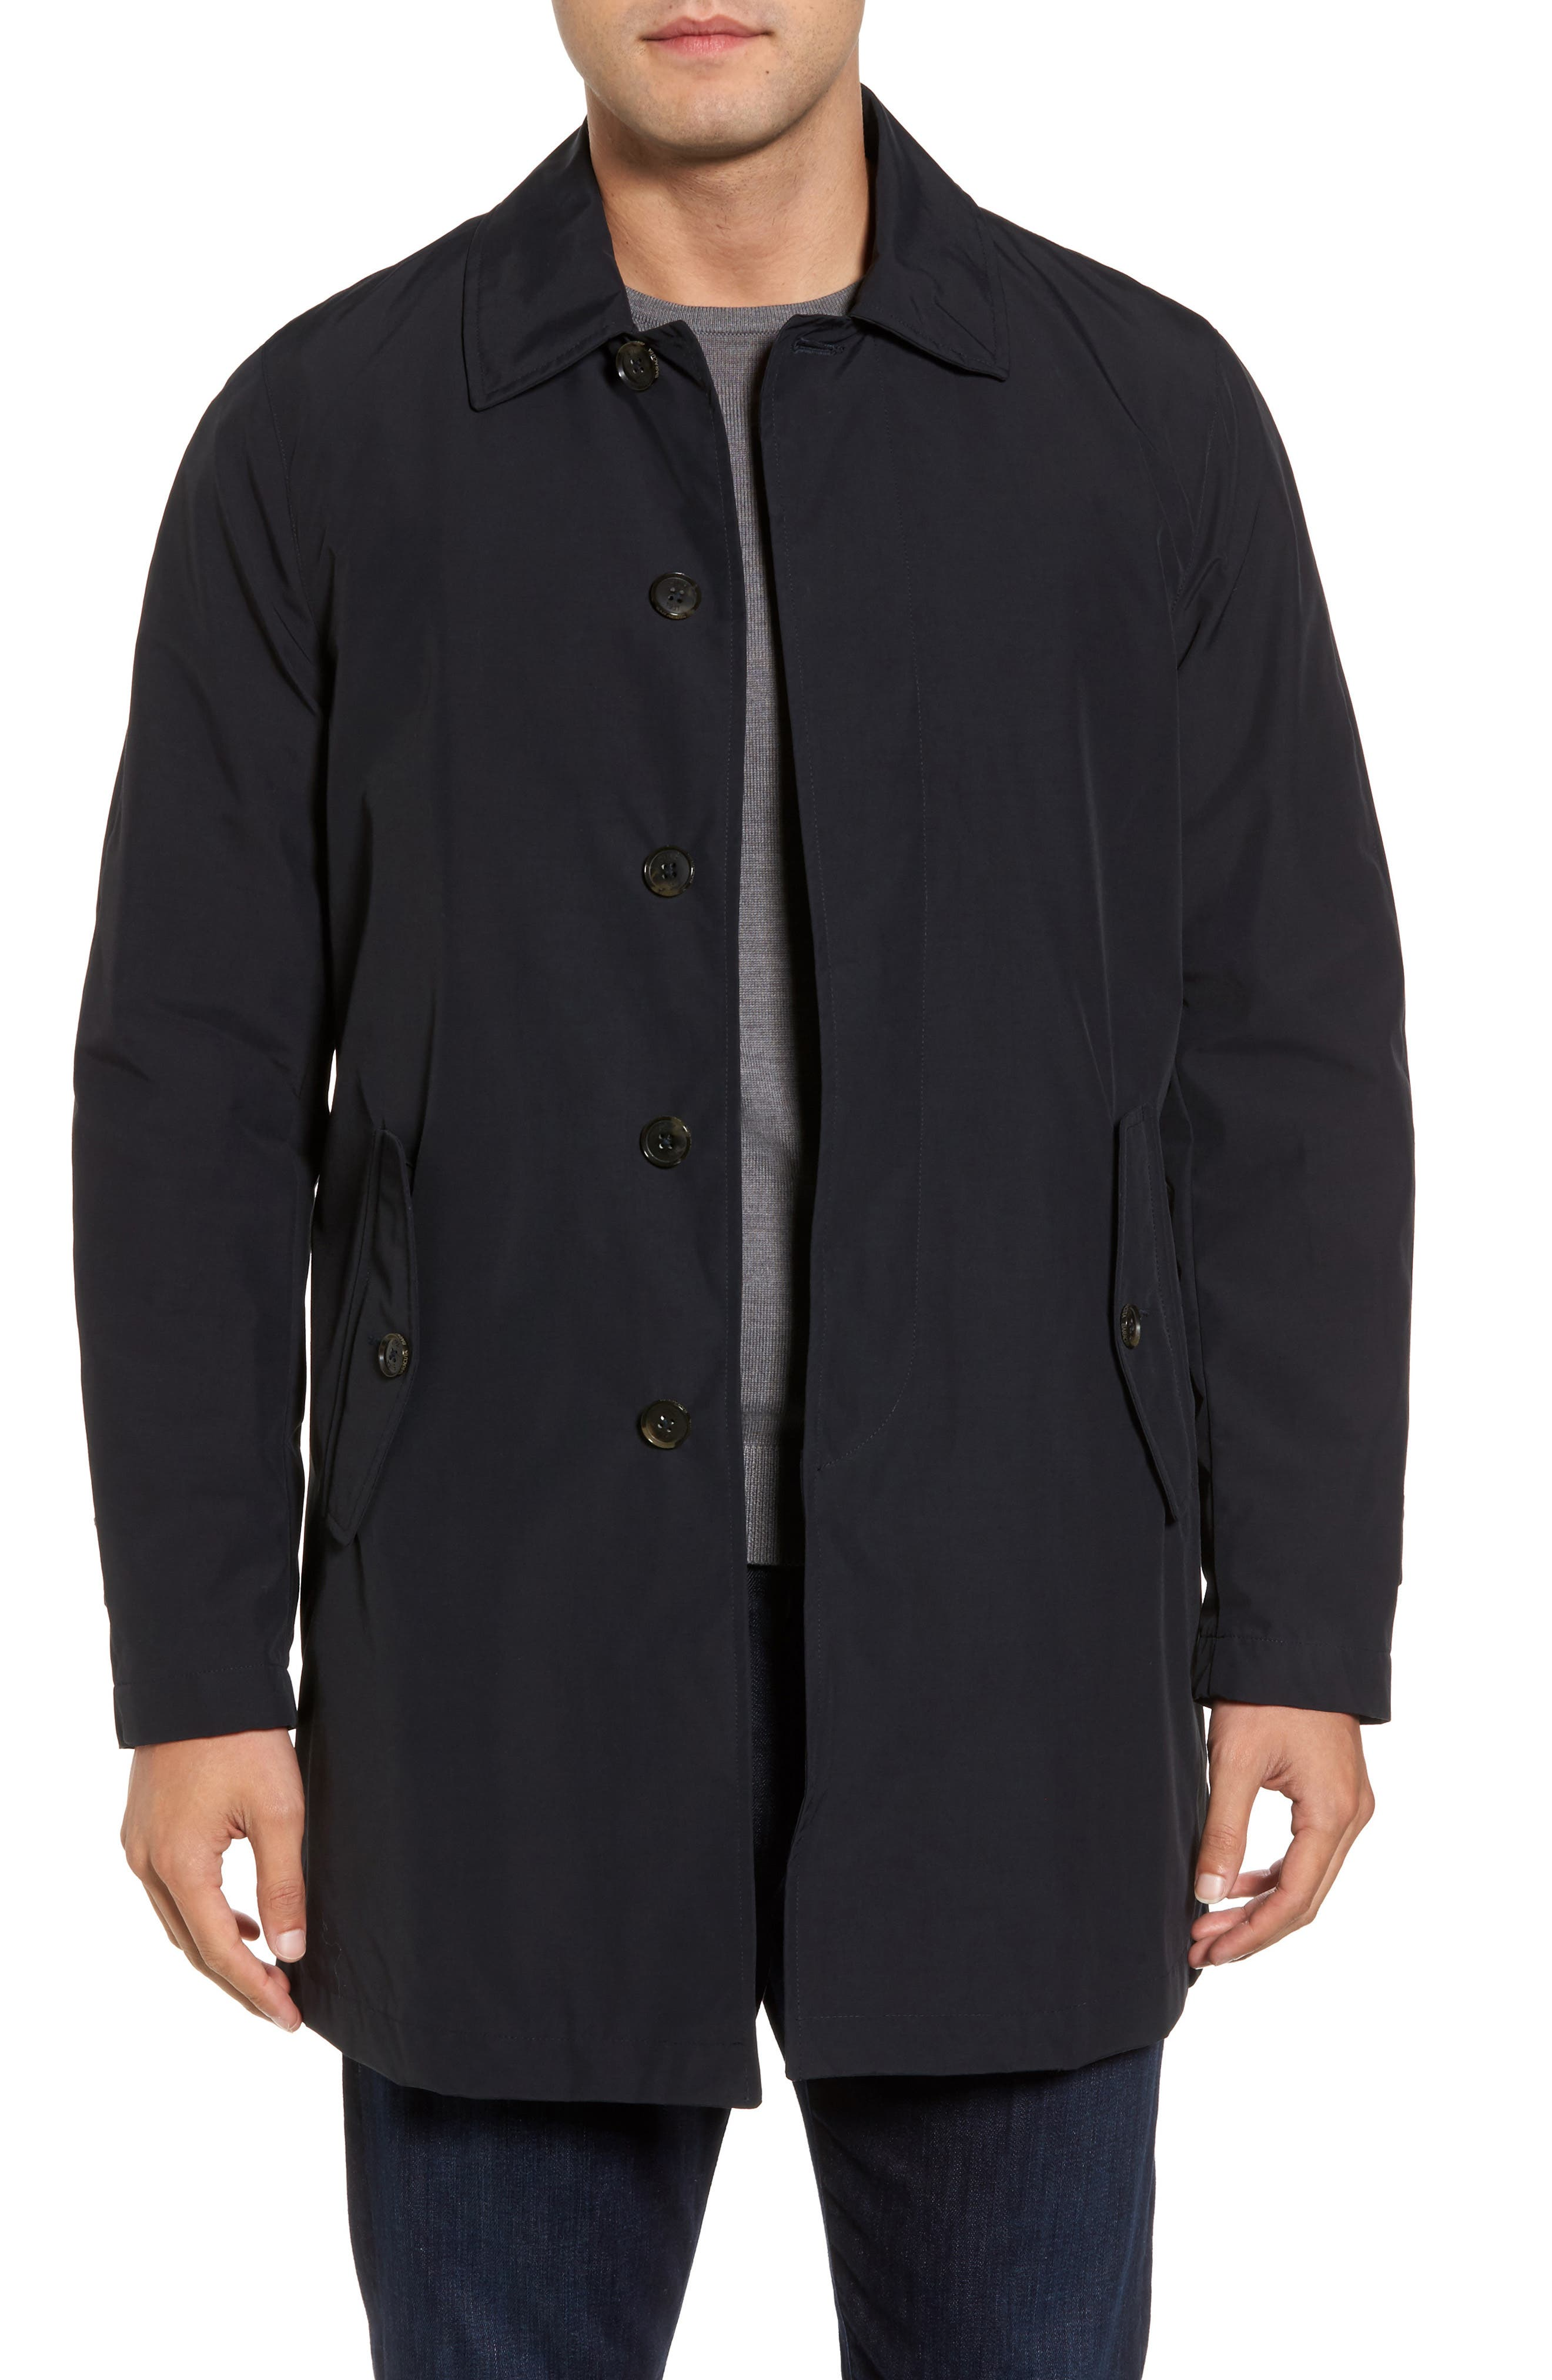 Waterproof Coat with Removable Liner,                             Main thumbnail 1, color,                             400